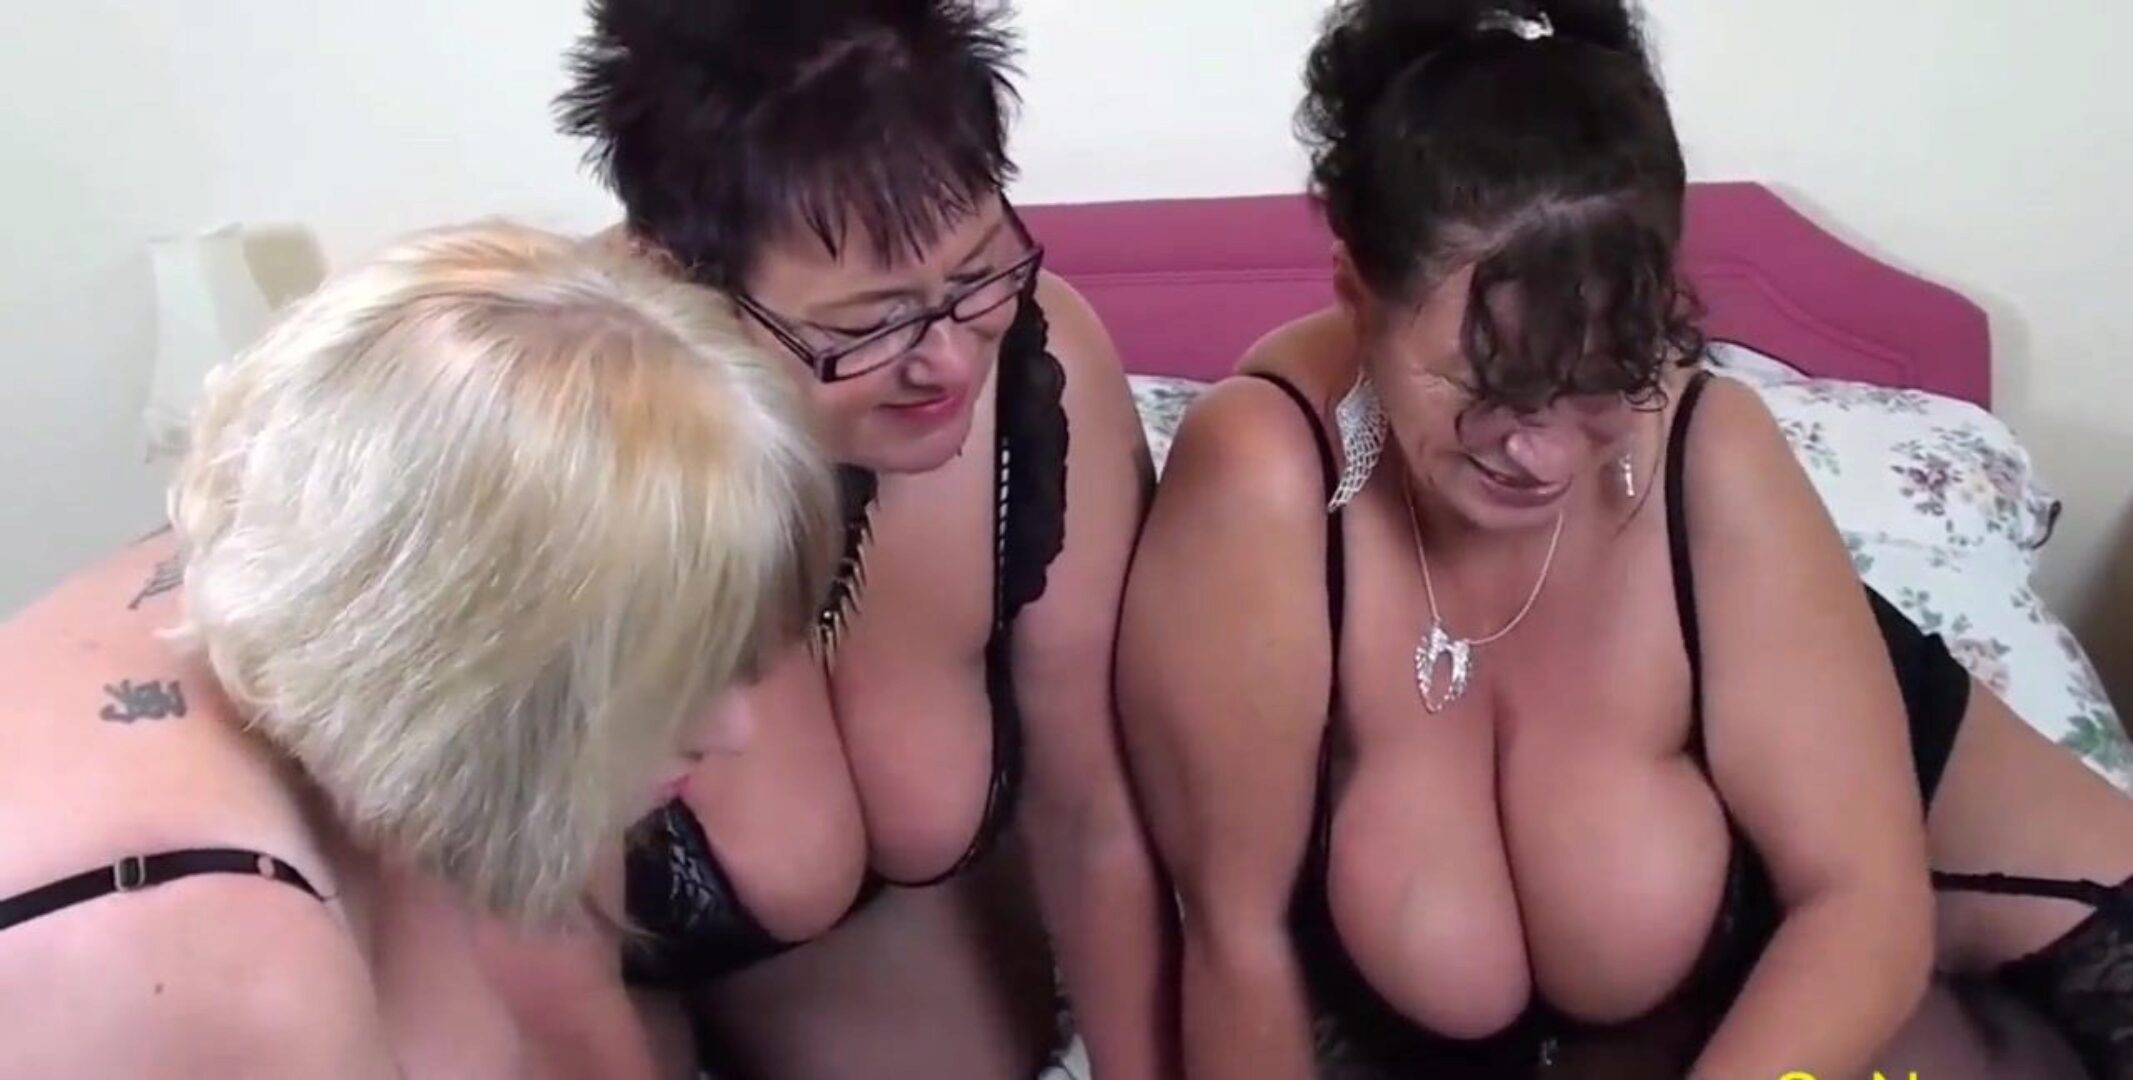 Oldnanny Three British Matures in Hardcore Action: Porn fa Watch Oldnanny Three British Matures in Hardcore Action movie on xHamster - the ultimate collection of free-for-all European & Free Xxx British HD porn tube clips